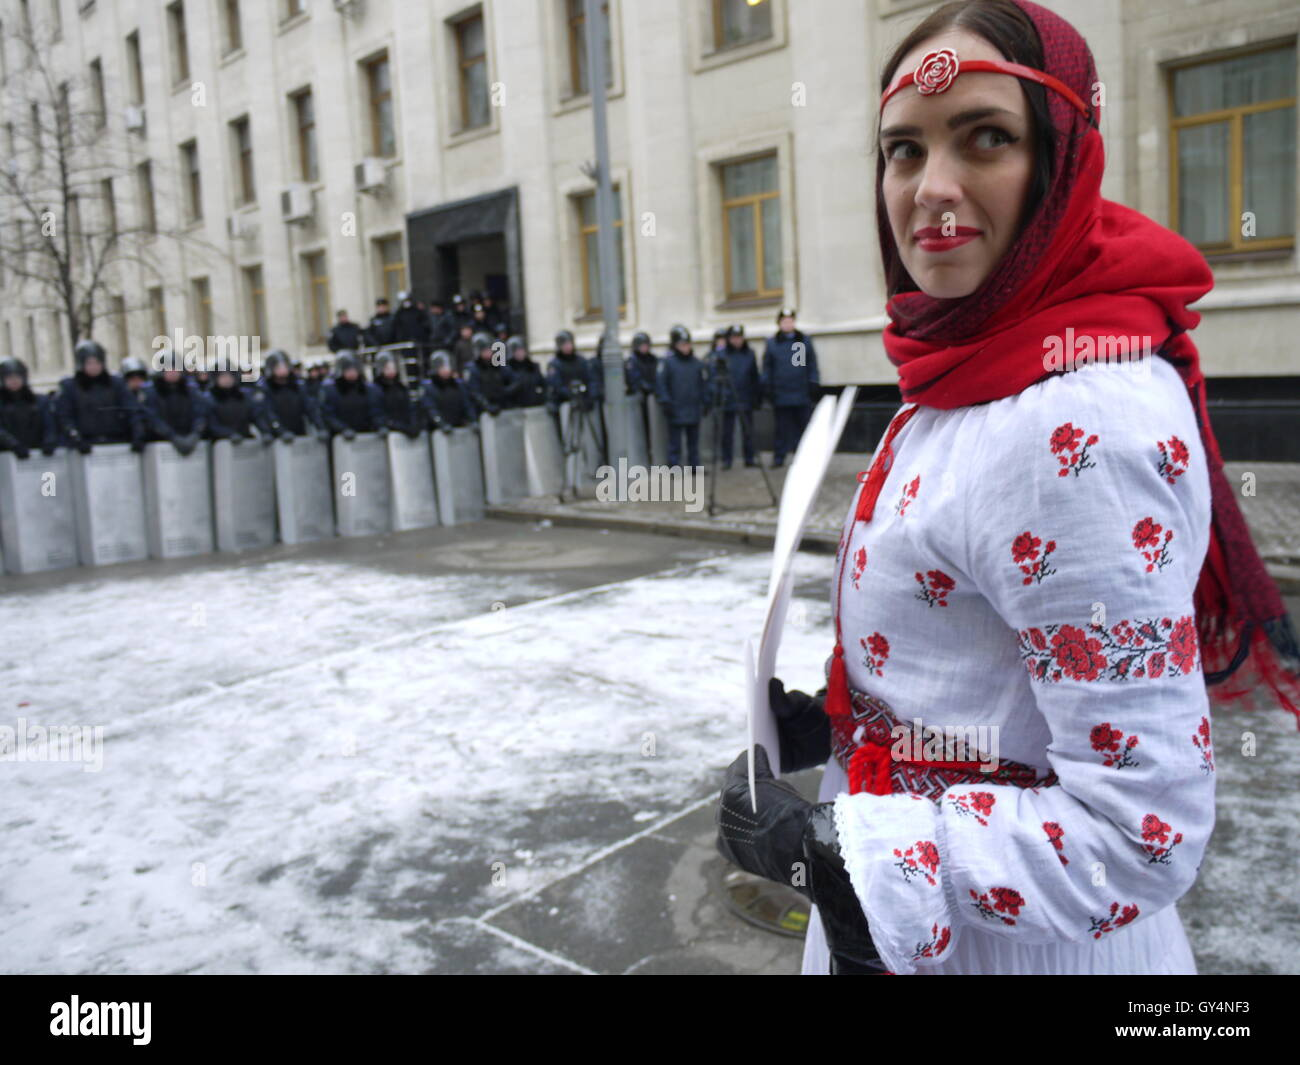 A girl protest against repression in Kiev, near presidential palace, during revolution of dignity in December 2013 - Stock Image